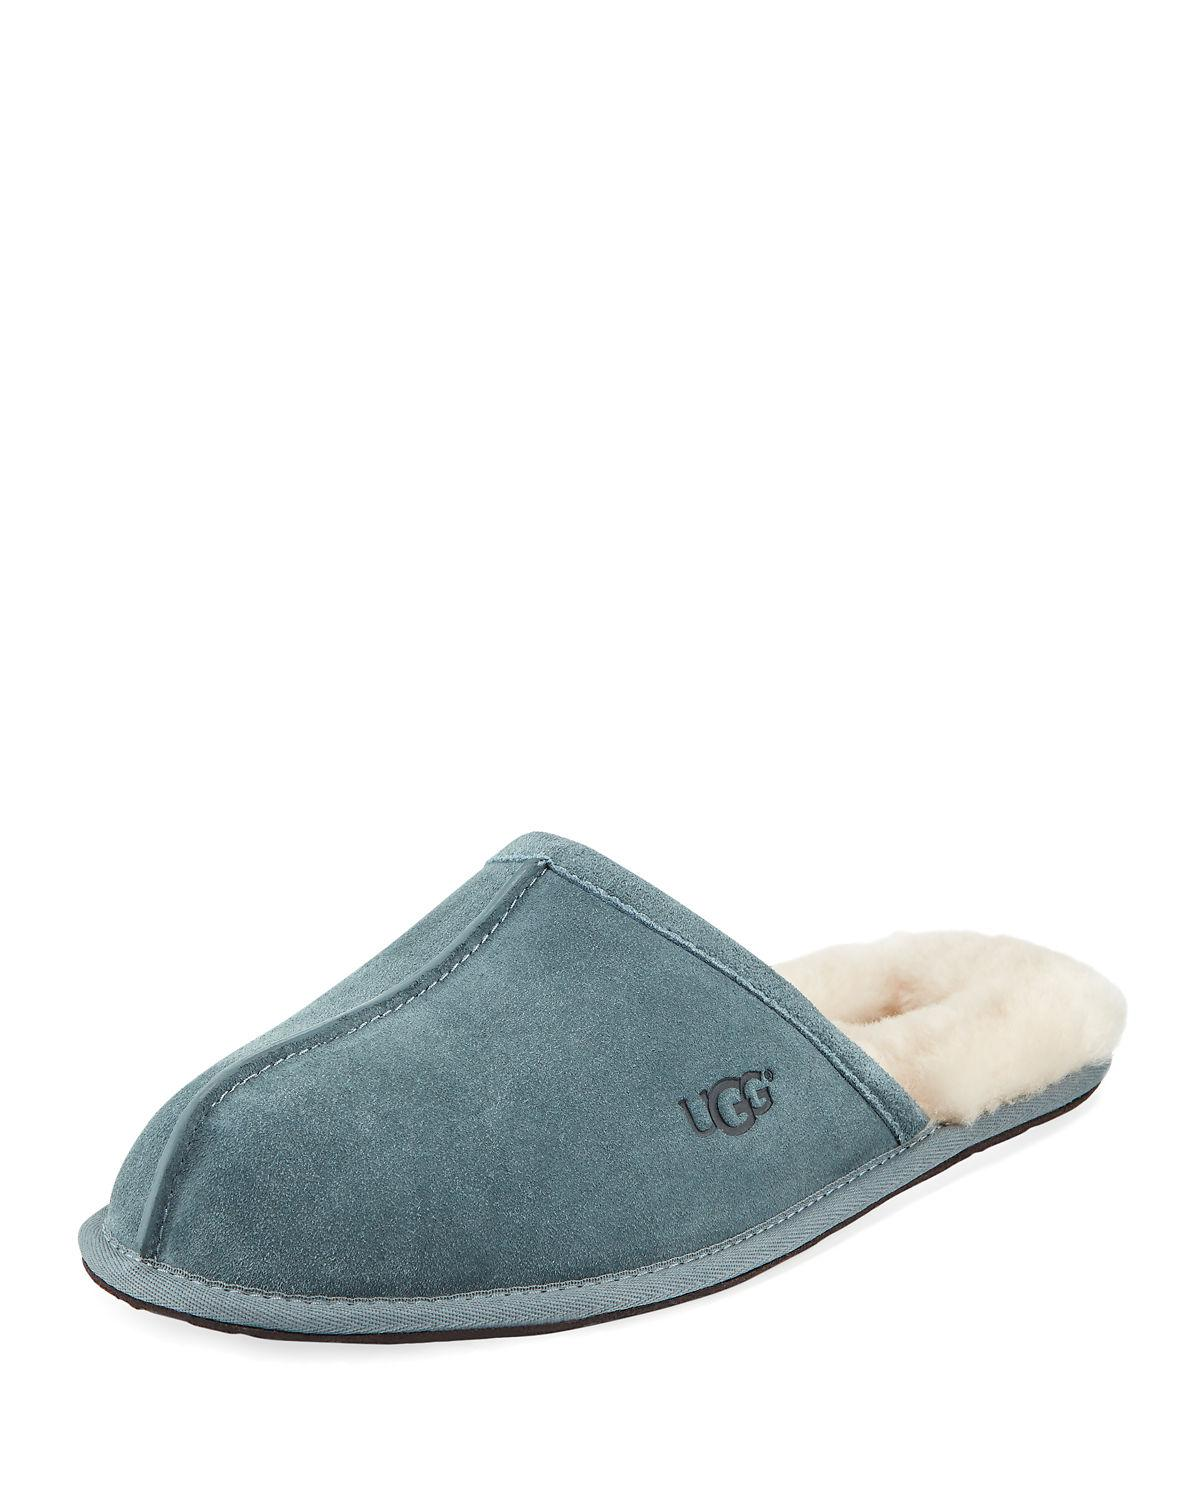 1e910219199 Lyst - Ugg Men s Scuff Shearling Mule Slipper in Blue for Men